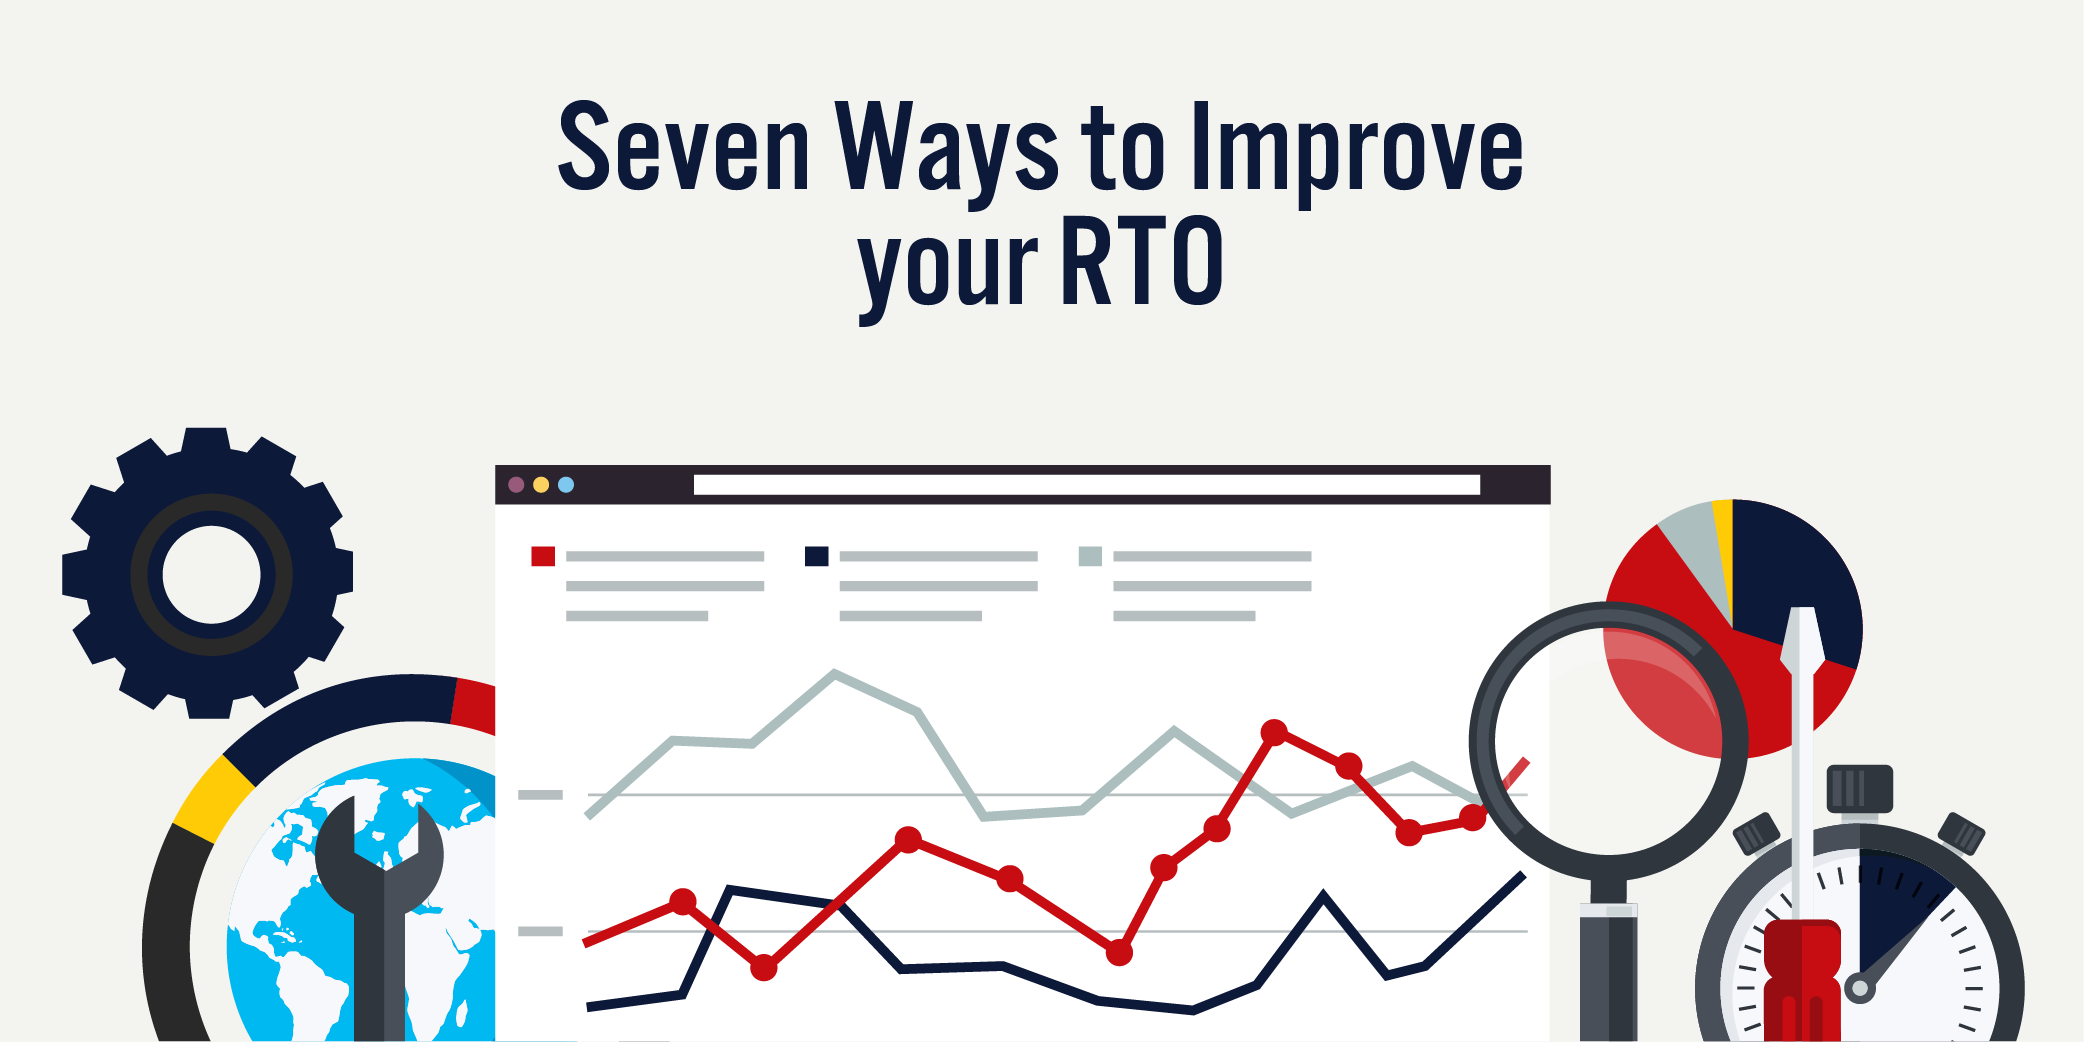 Seven Ways to Improve your RTO